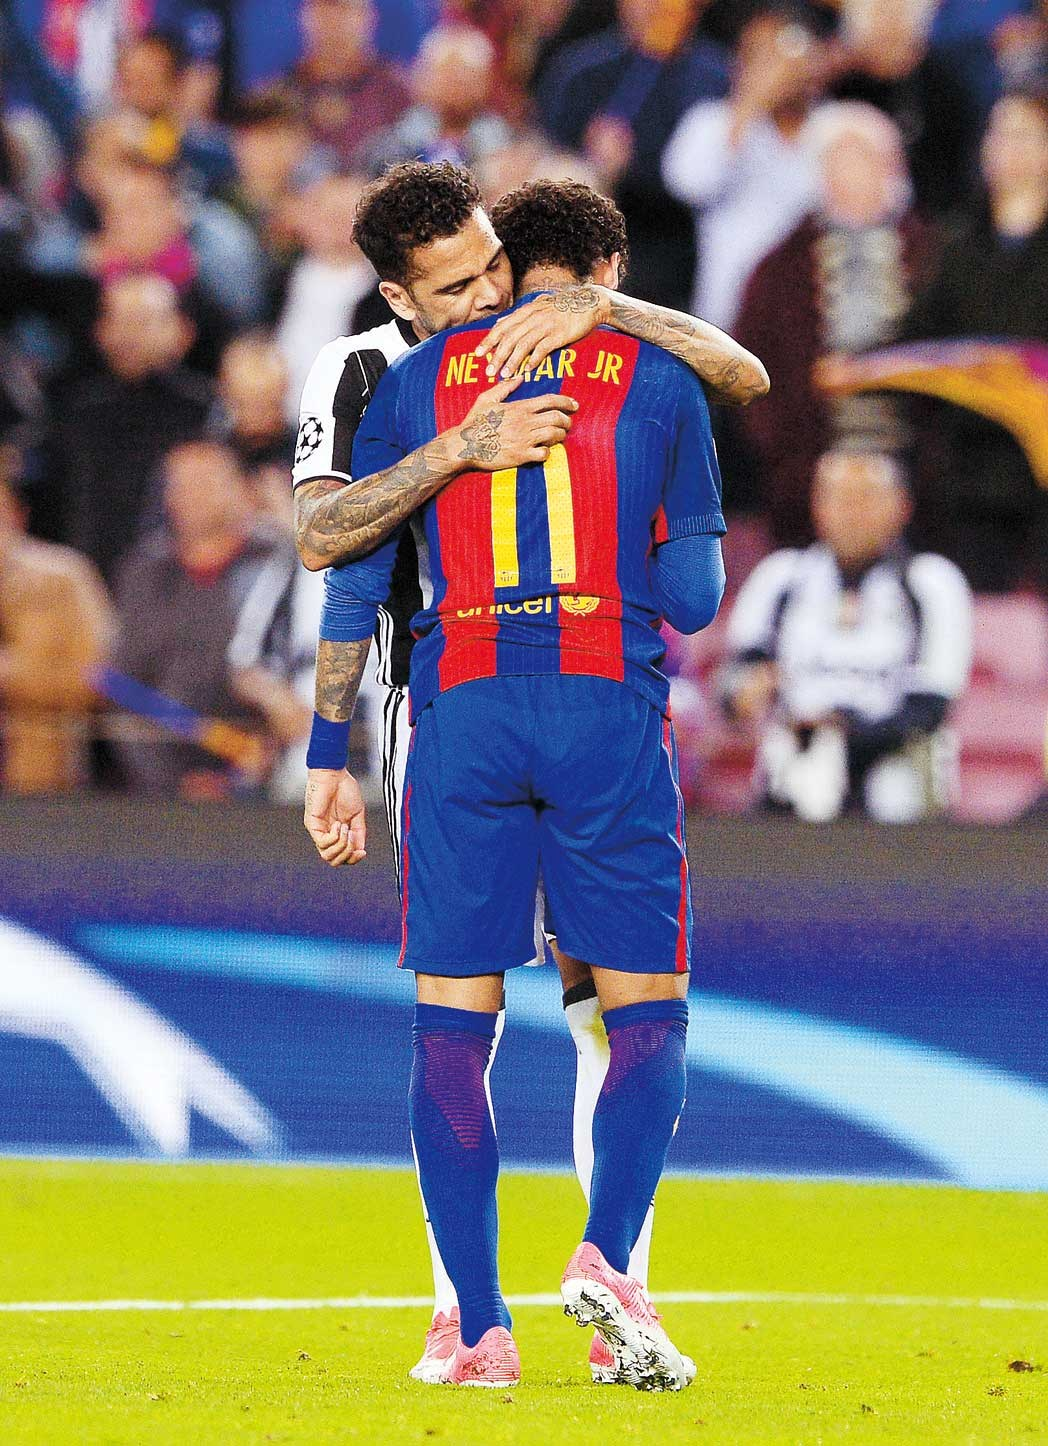 Barcelona's Neymar is comforted by Juventus' Dani Alves after their UEFA Champions League quarterfinal second leg at the Nou Camp in Barcelona on Wednesday.— AFP